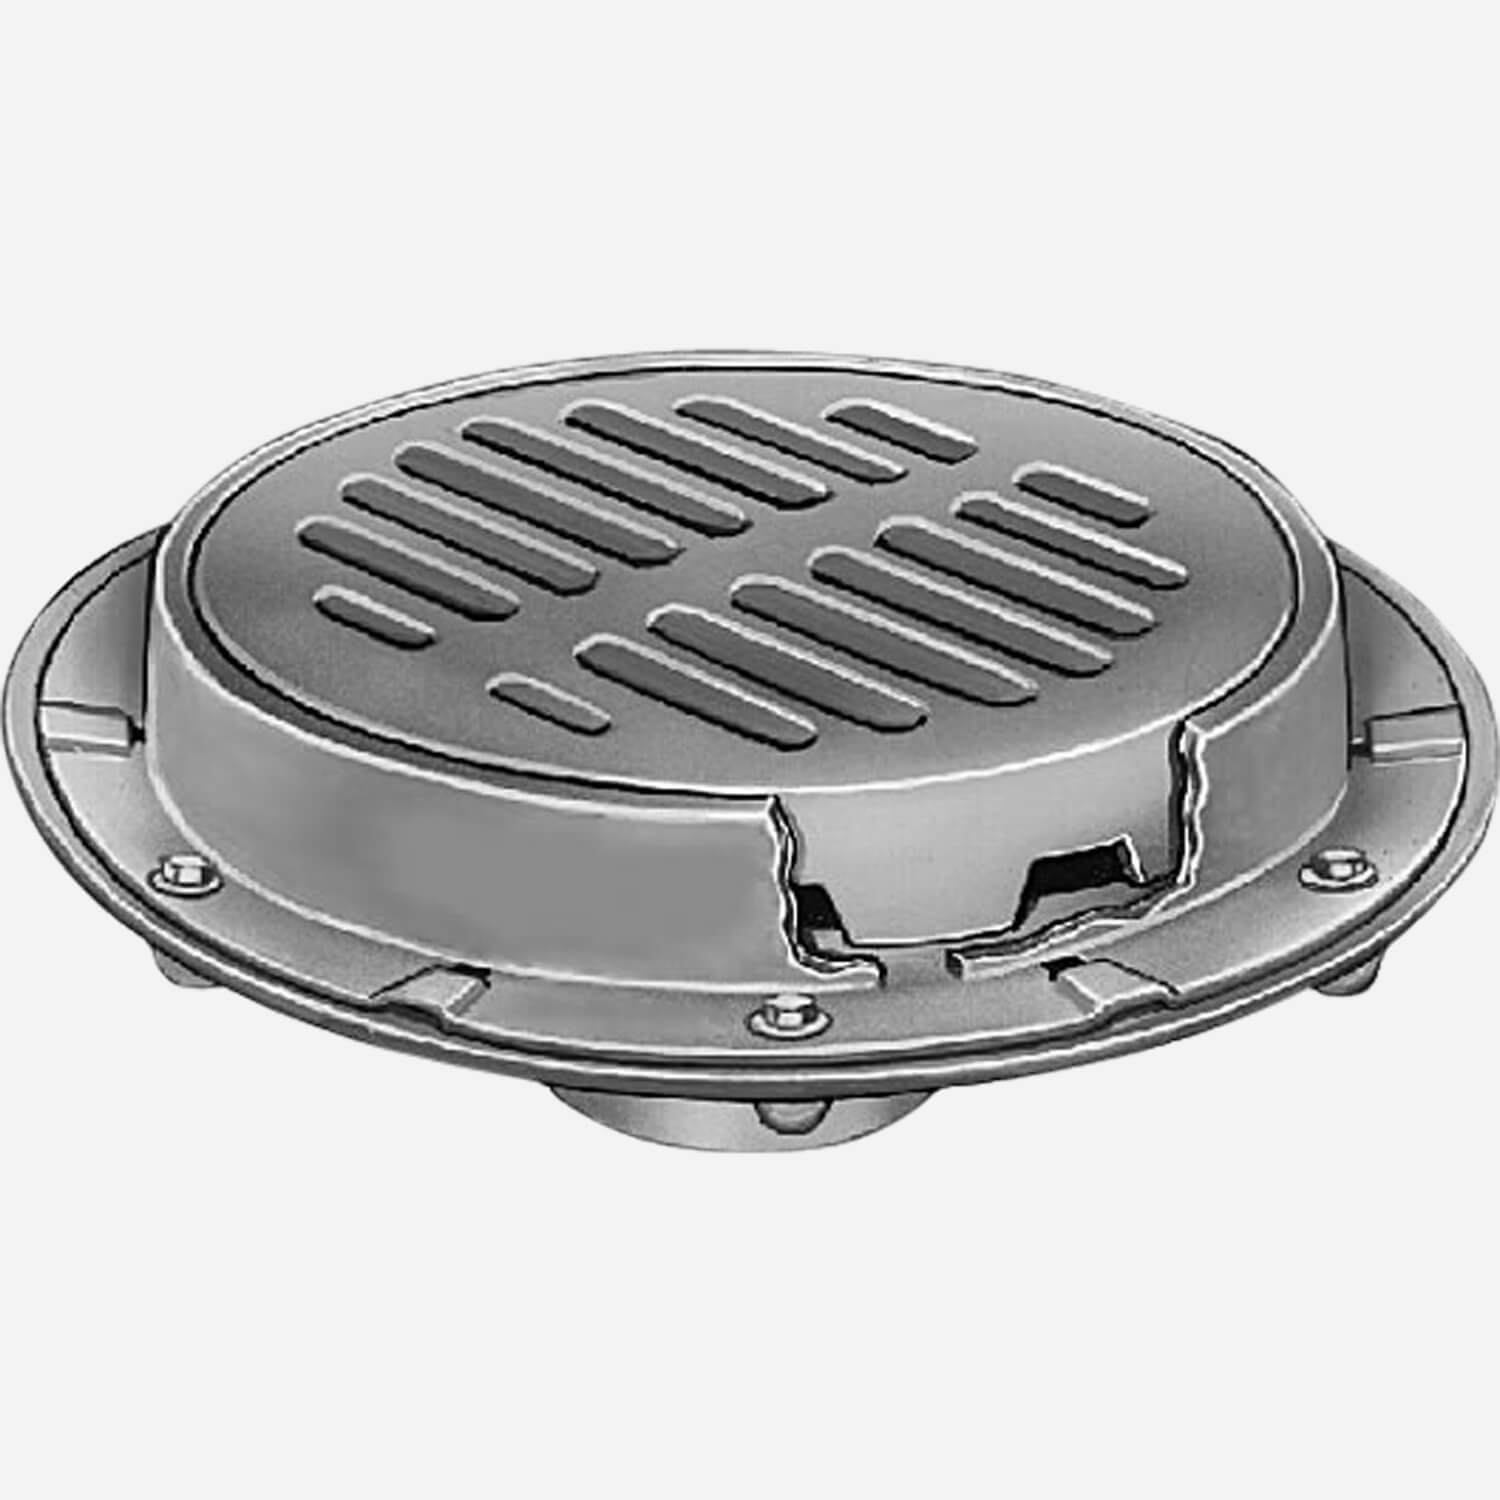 Heavy Duty Floor Drains With 15 Quot Round Tractor Grate Tops